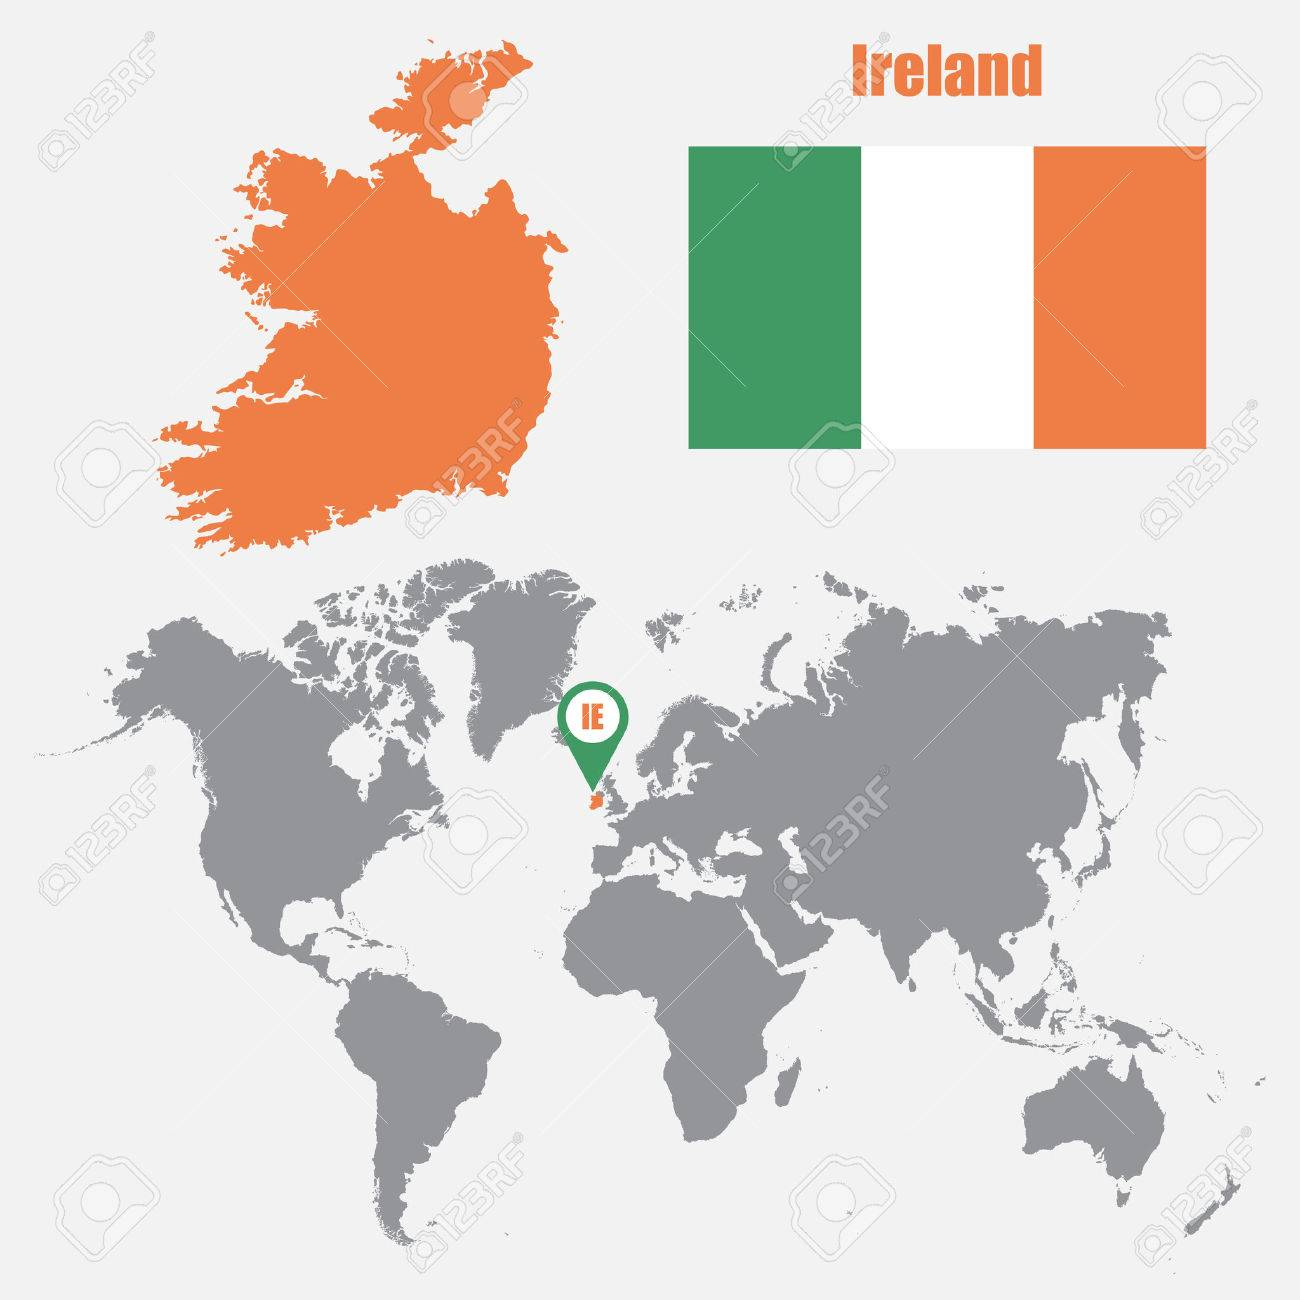 World Map Of Ireland.Ireland Map On A World Map With Flag And Map Pointer Vector